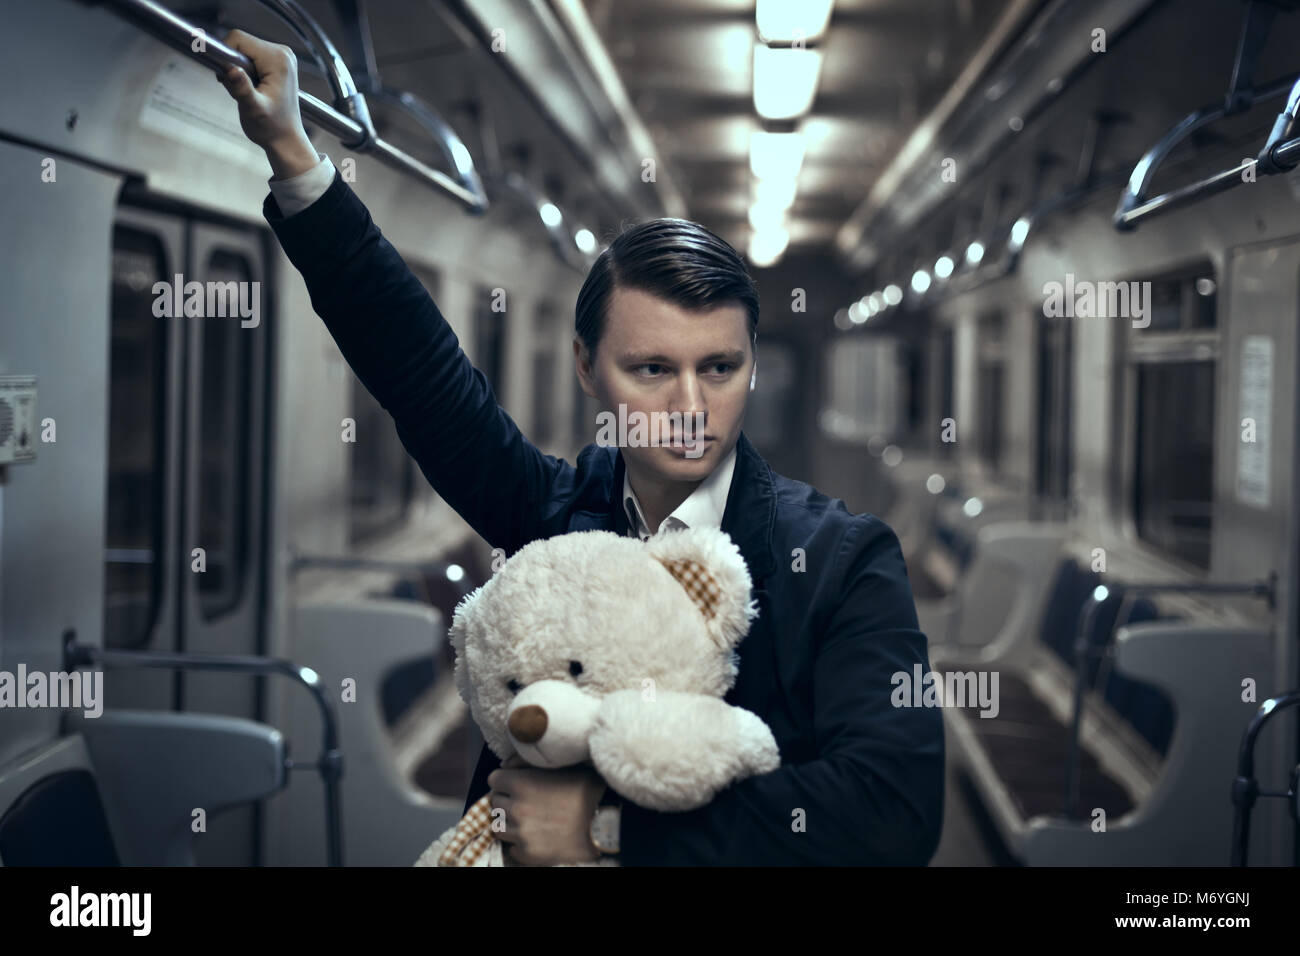 Guy with a teddy bear in the subway. In an empty car he is lonely, it makes him sad. - Stock Image